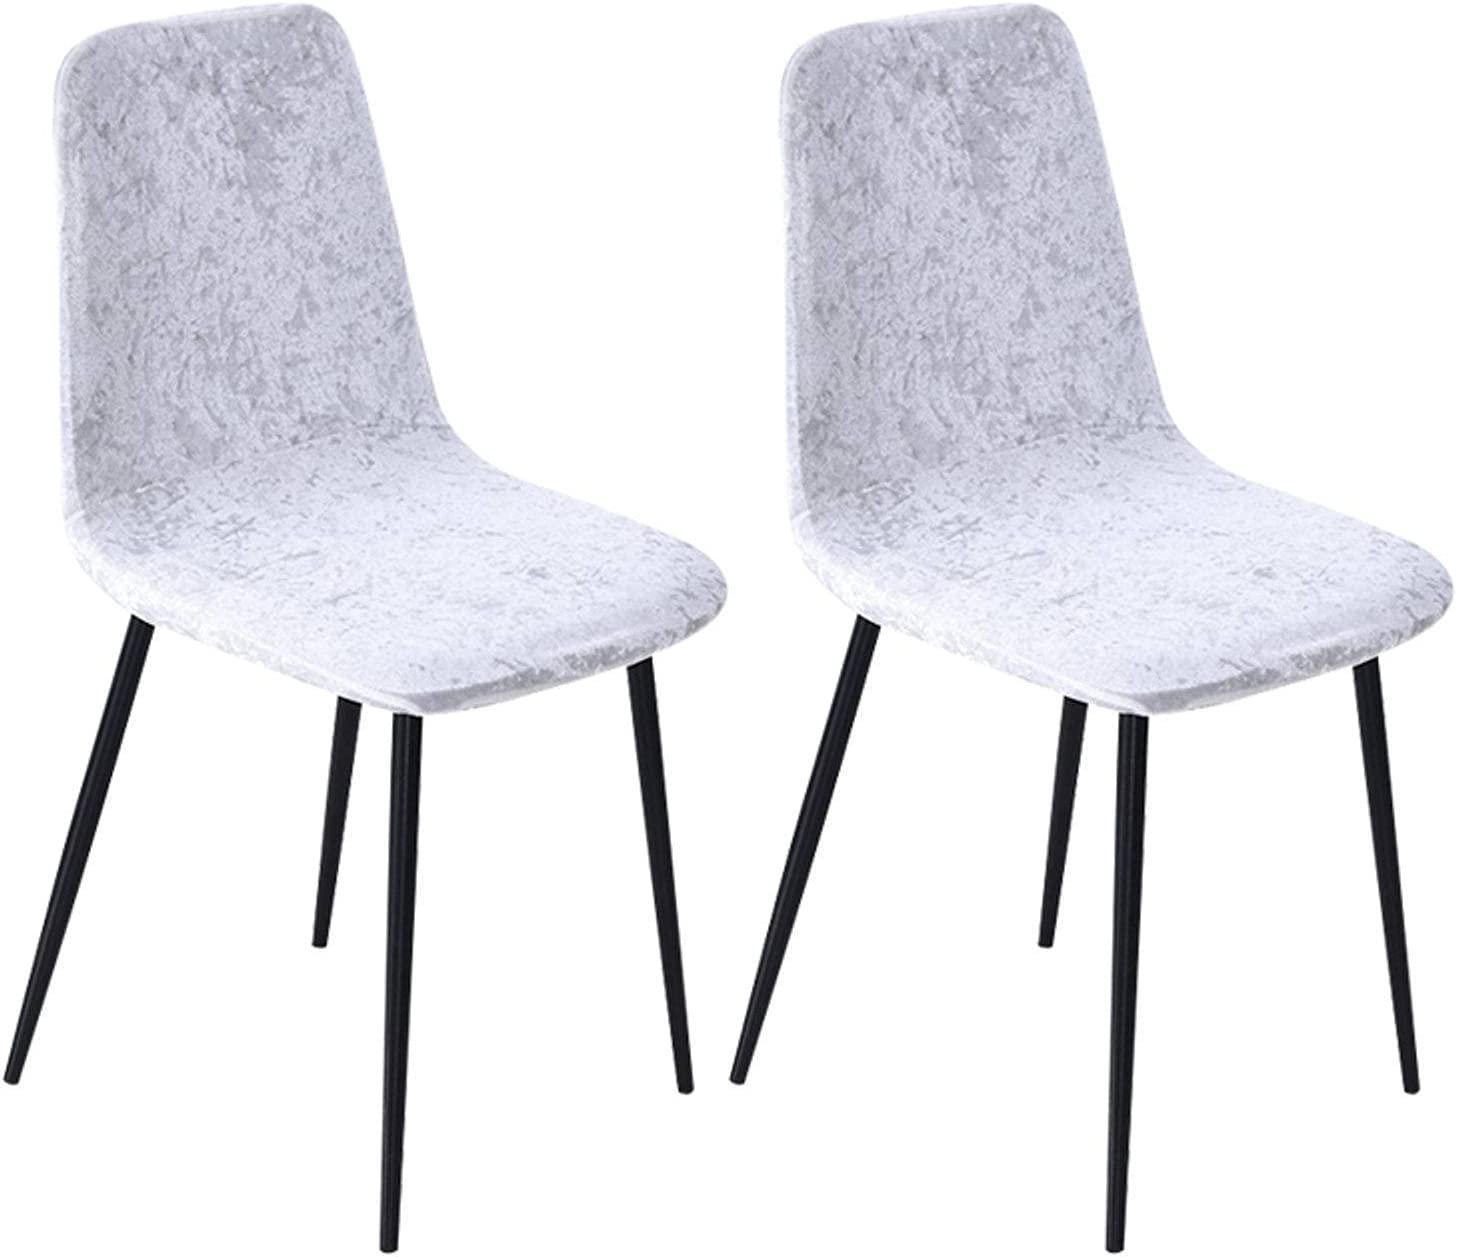 Max 68% OFF NUELLO Velvet Dining Chair Trust Covers Stretch for Dini